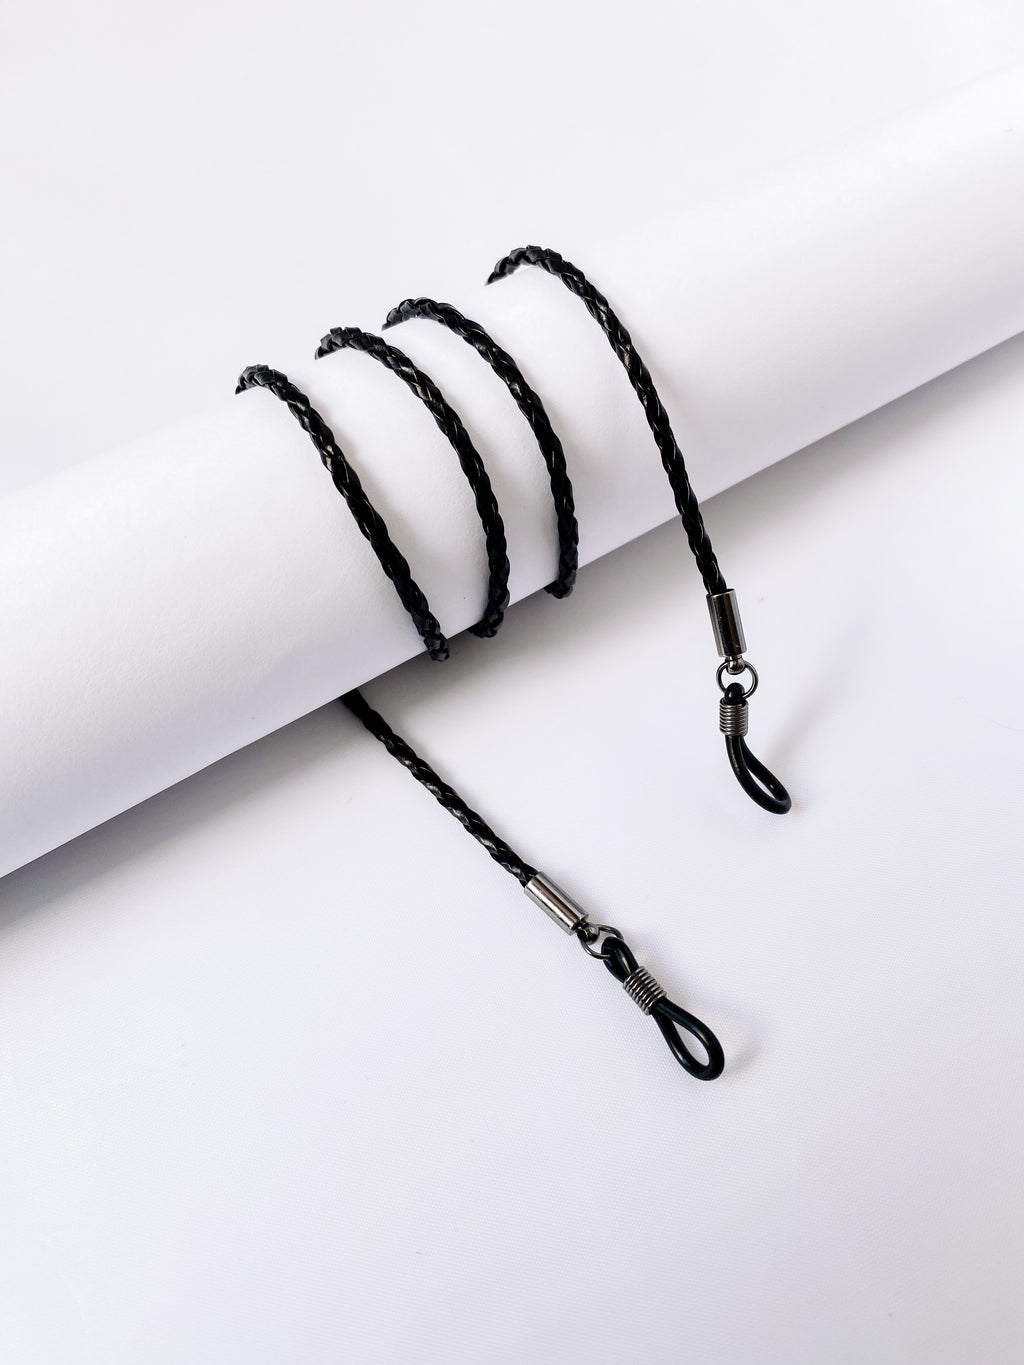 Braided Straps Black Walters